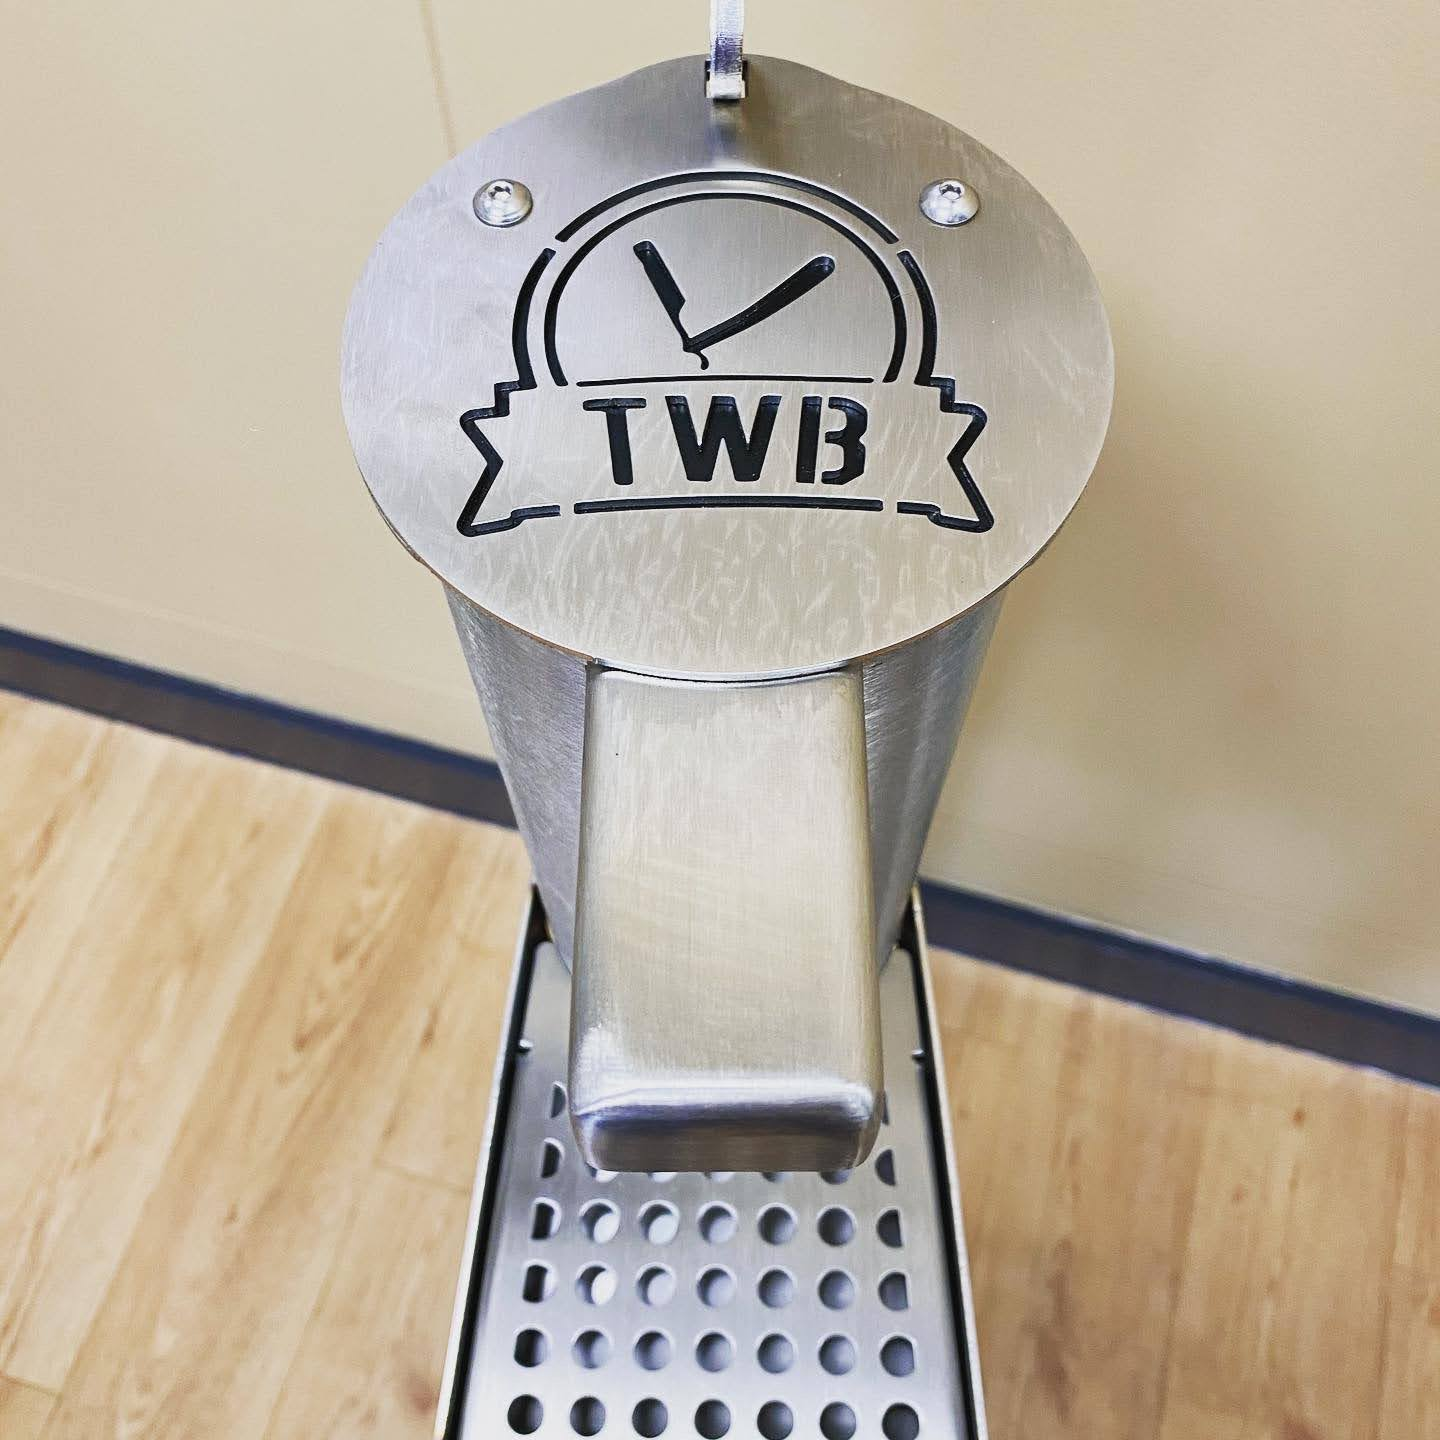 TWB logo on H360 products hand sanitiser dispenser